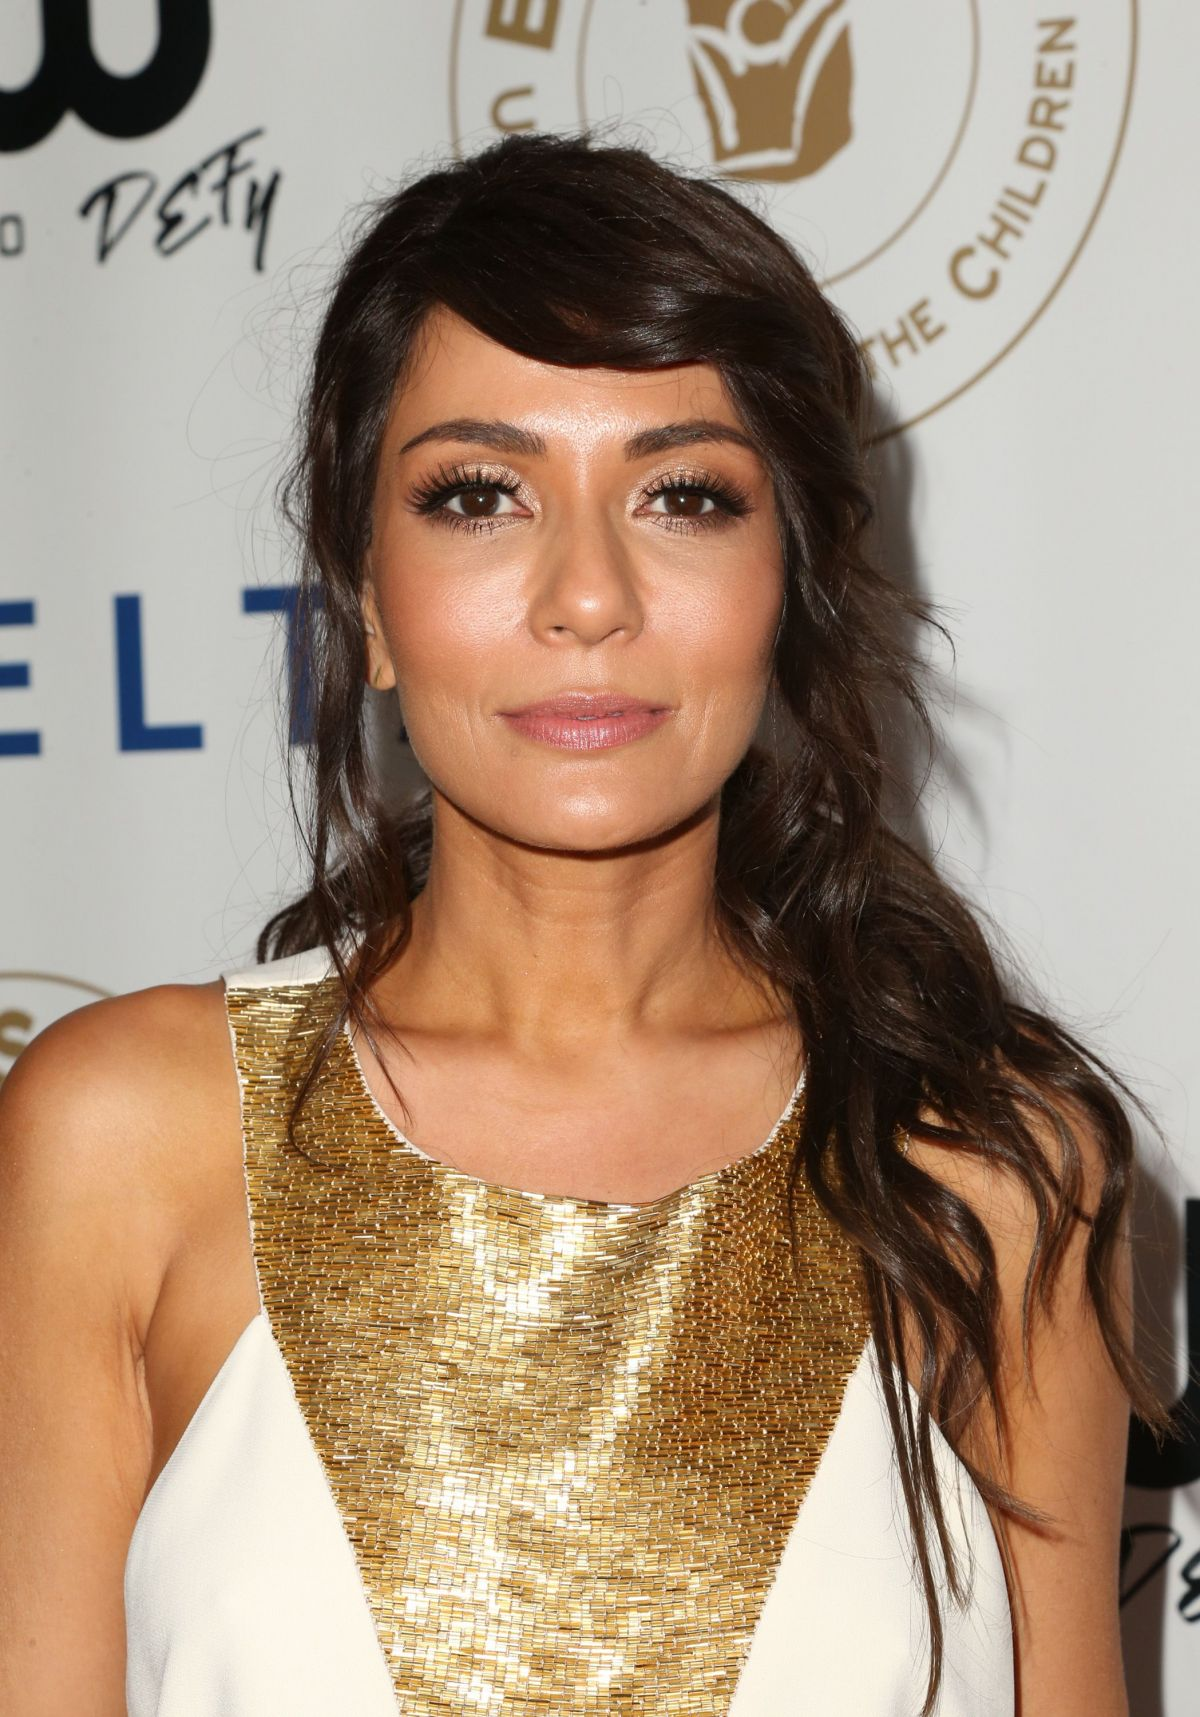 MARISOL NICHOLS at United Friends of the Children Dinner in Los Angeles 06/08/2017